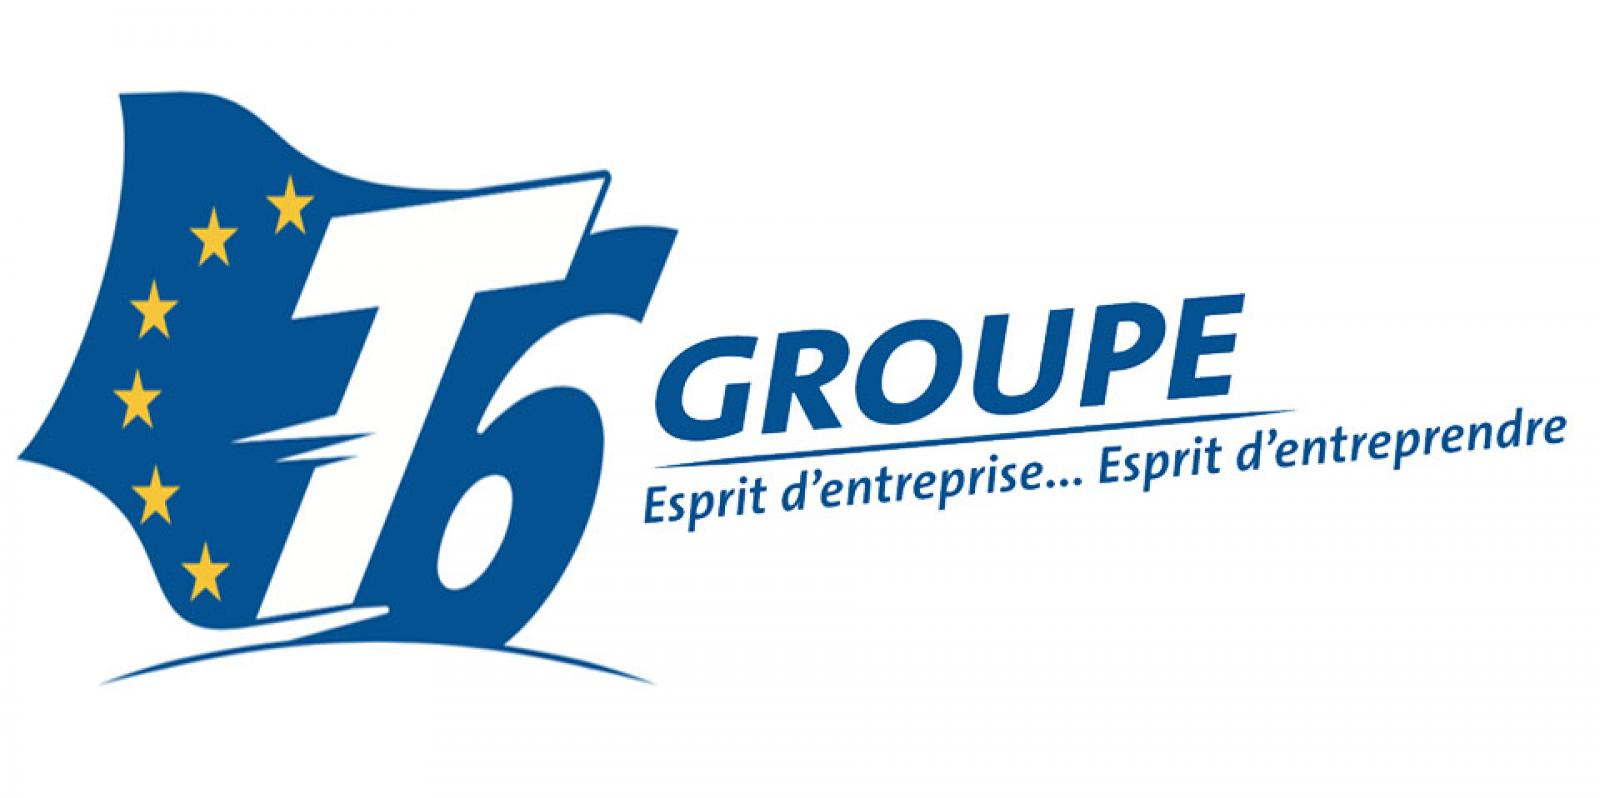 T6 Groupe